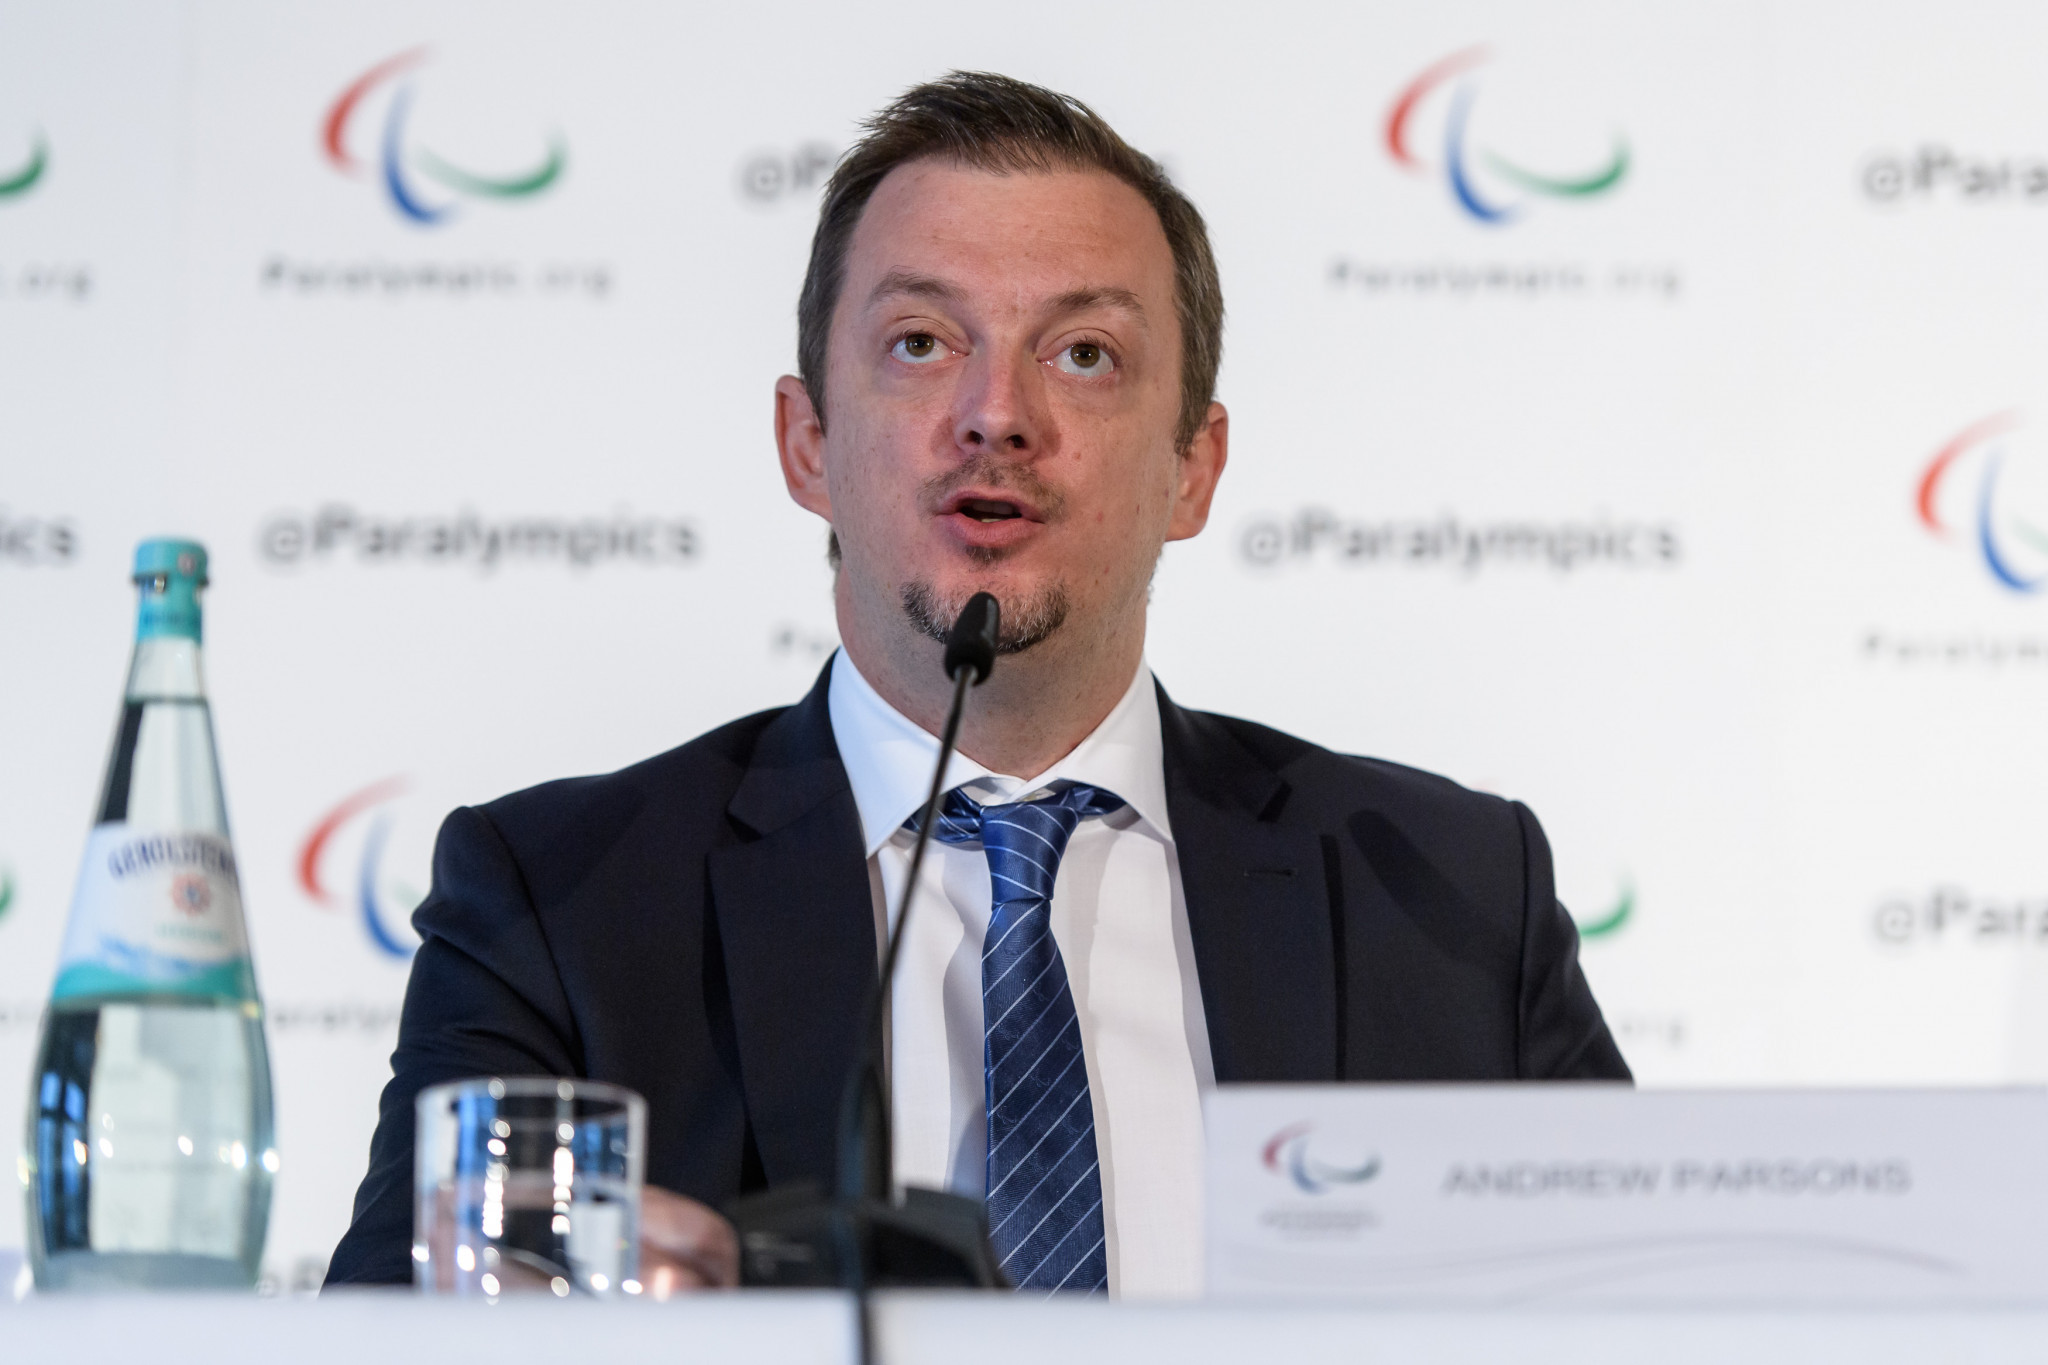 IPC President Parsons' praise for successful Milan Cortina 2026 Winter Paralympic Games bid